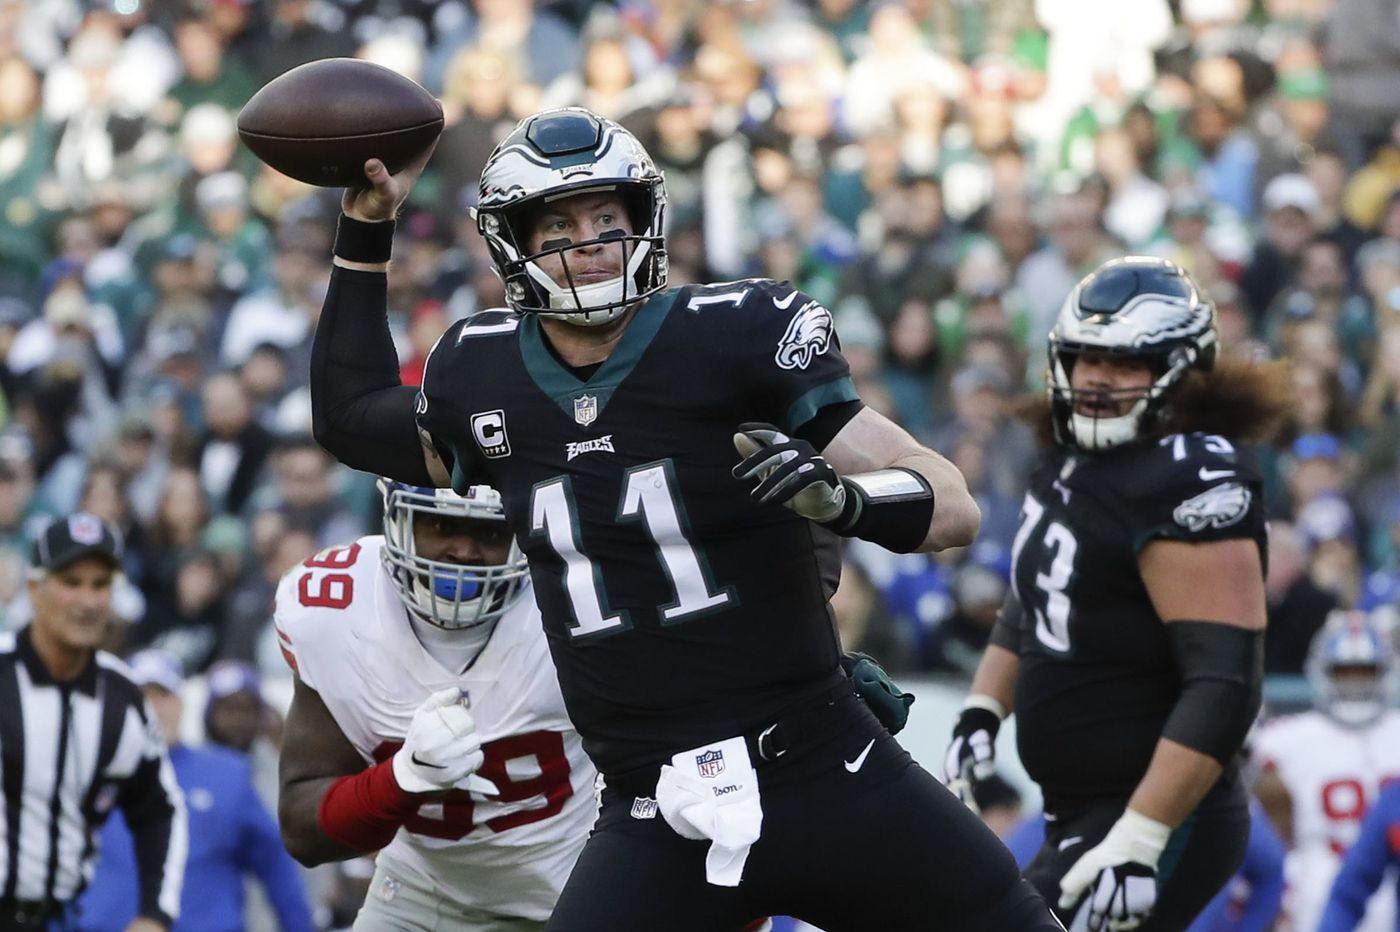 Carson Wentz and clutch: Words that go together well in Eagles victory over Giants | Jeff McLane